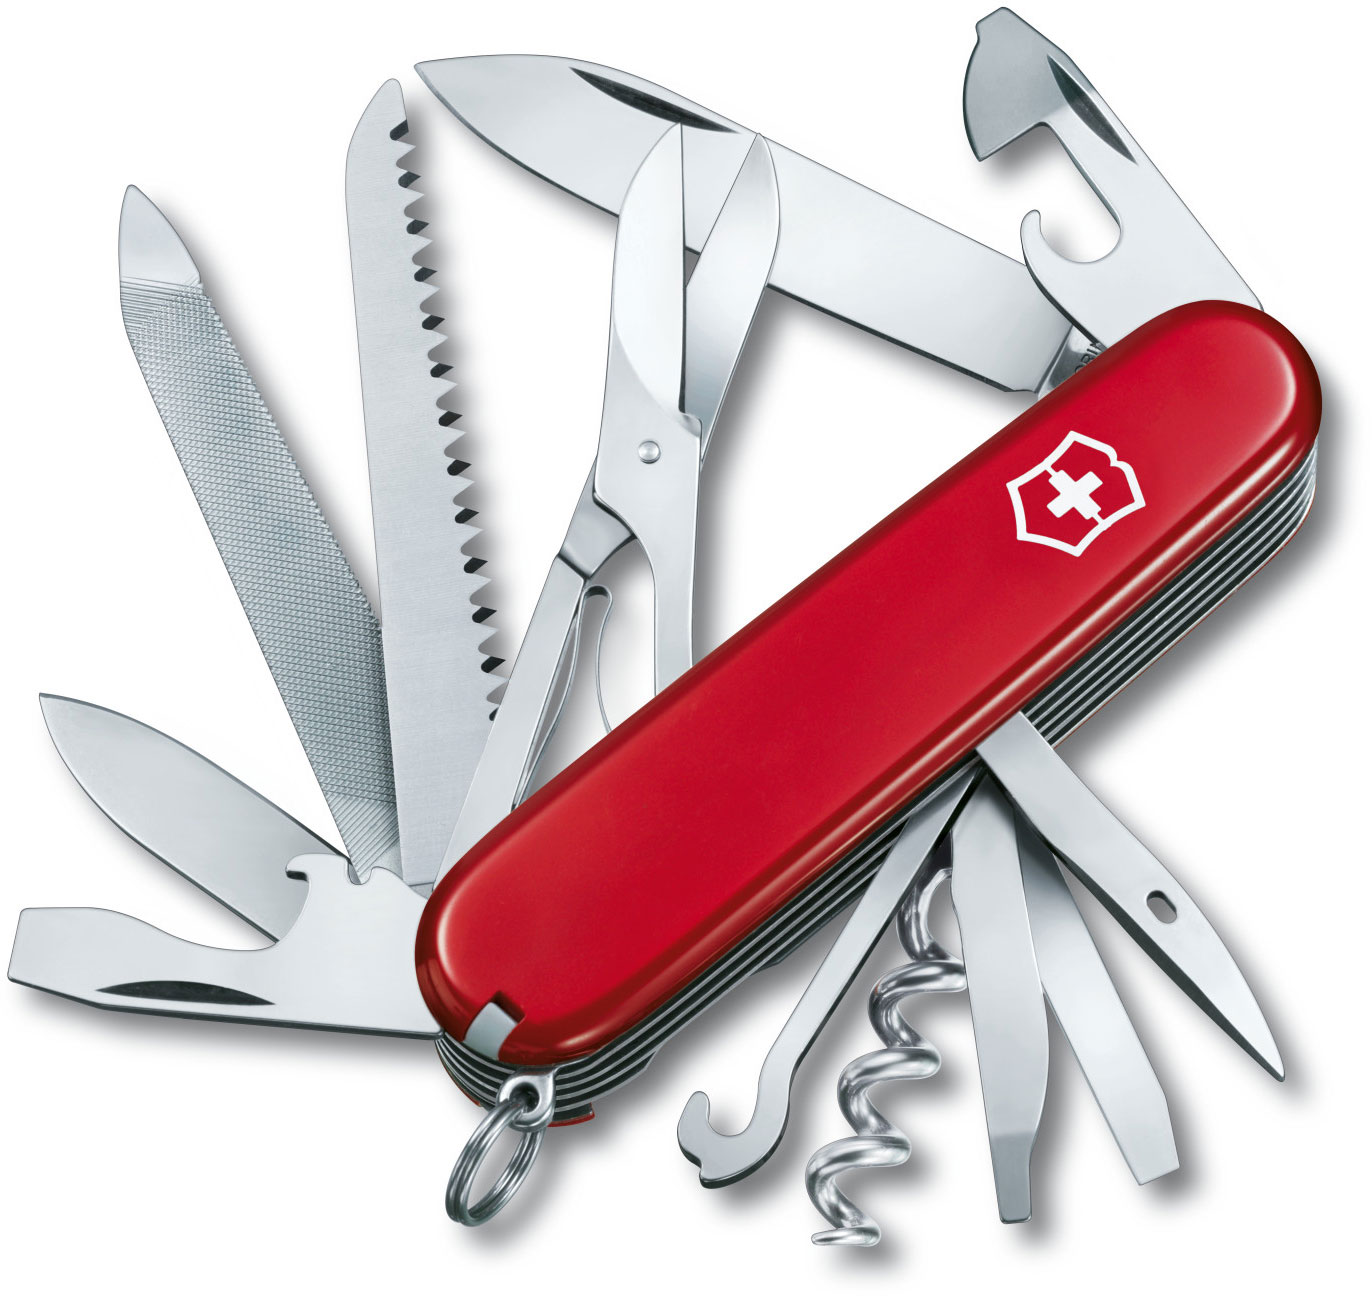 How to Sharpen a Swiss Army Knife